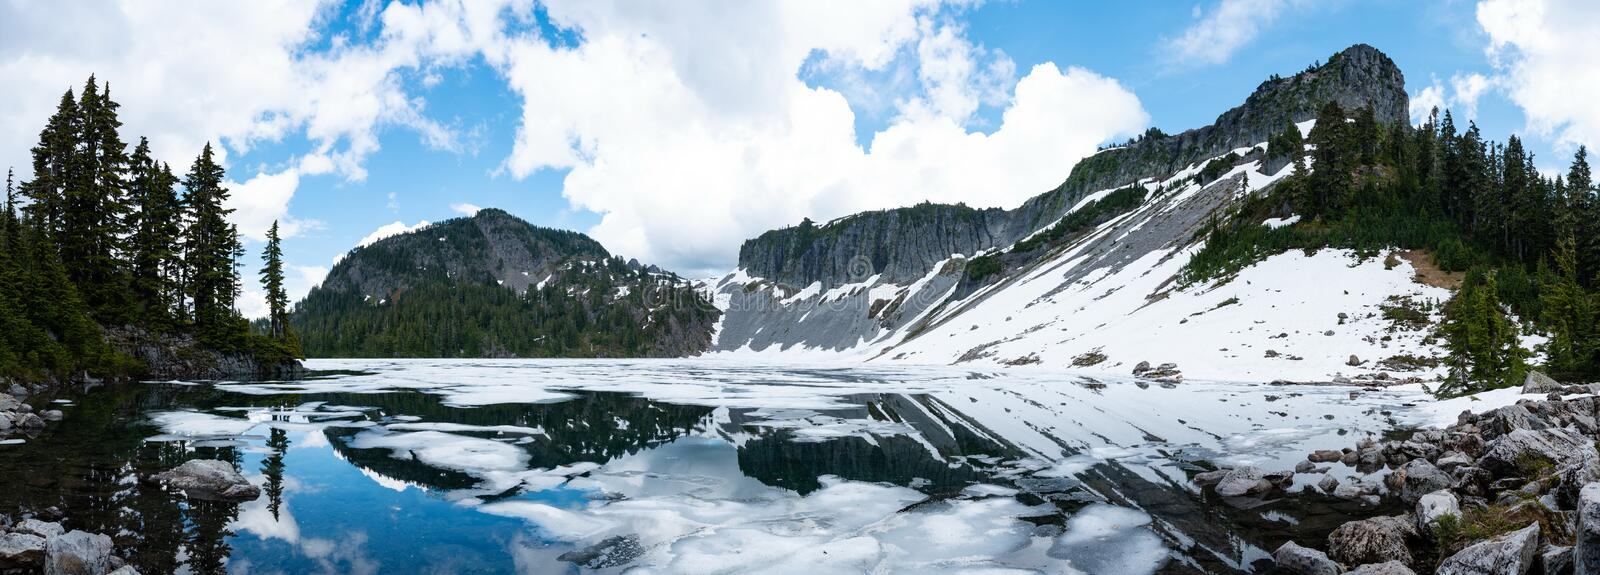 Mountain lake landscape with blue sky and clouds stock photography